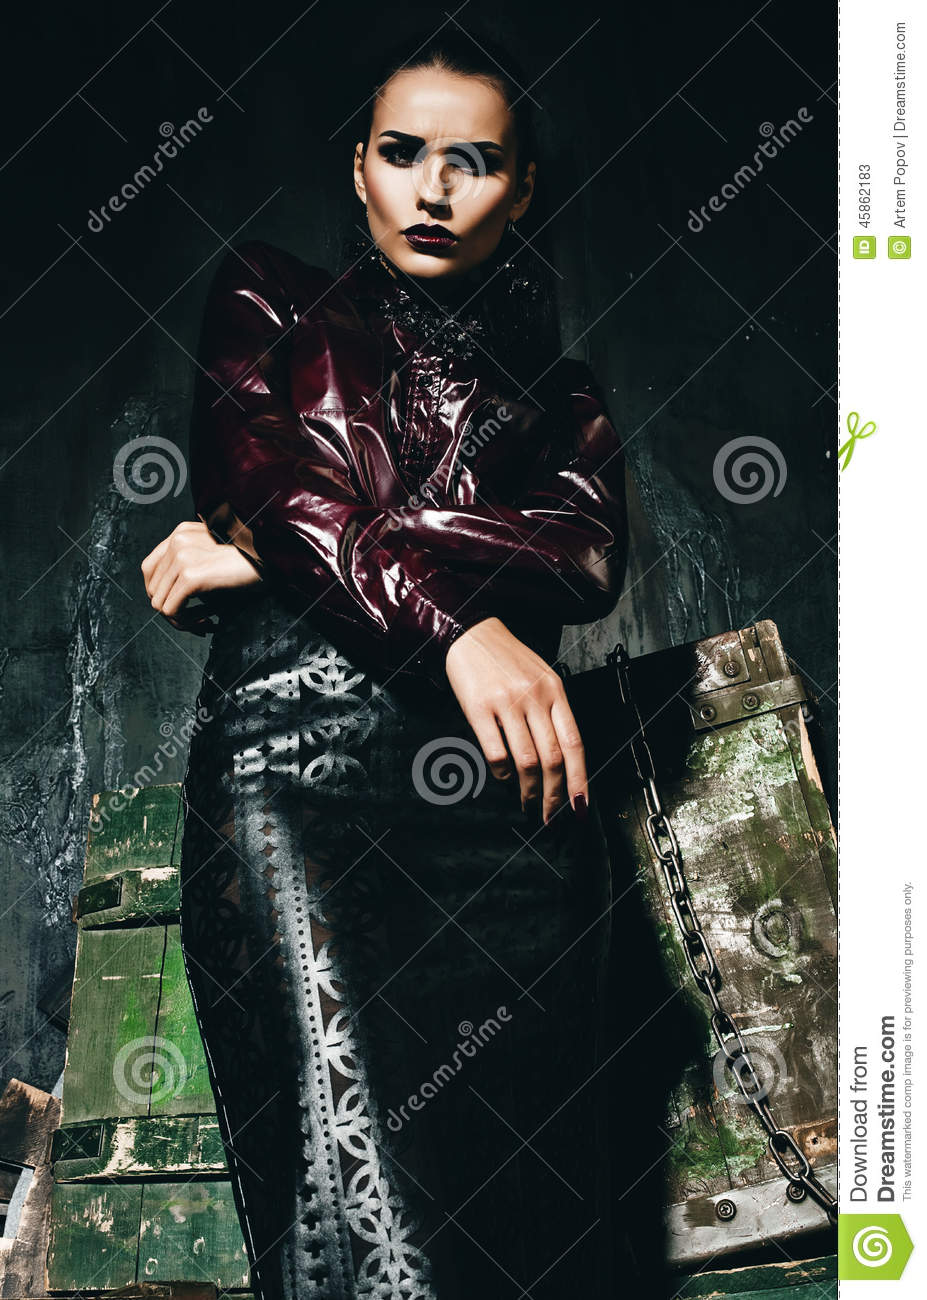 Serious Woman In Claret Shirt And Black Leather Skirt